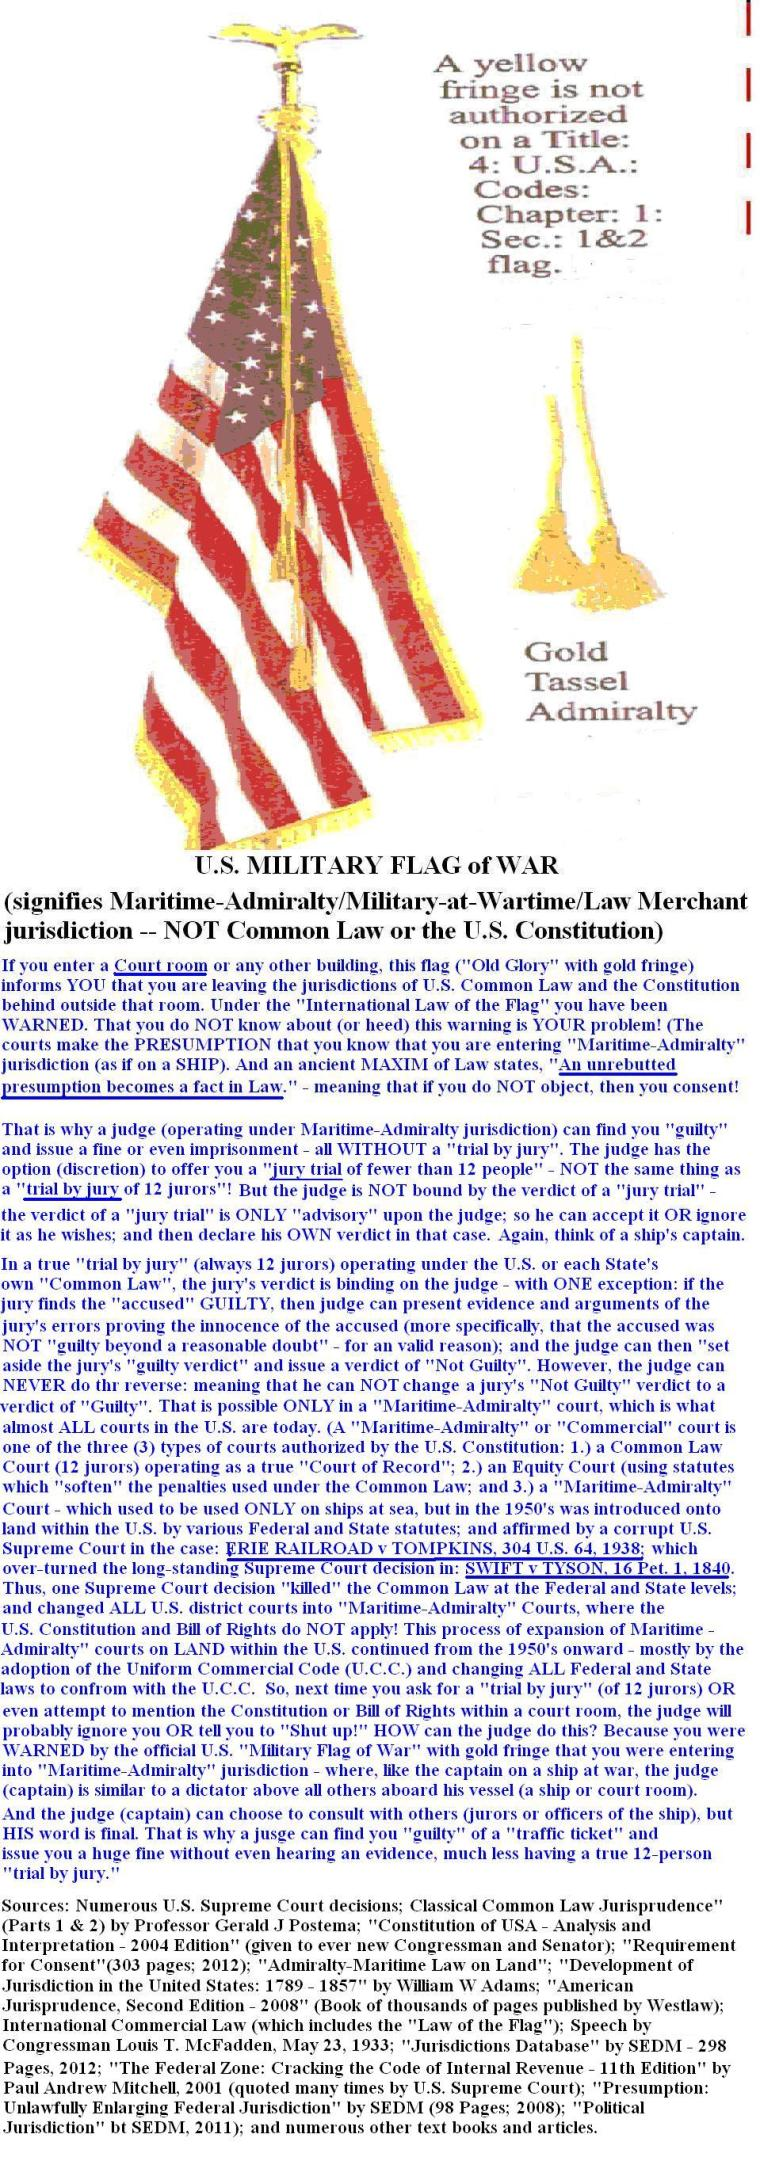 us_military_flag_of_war__Extensive_Notes__cap_1